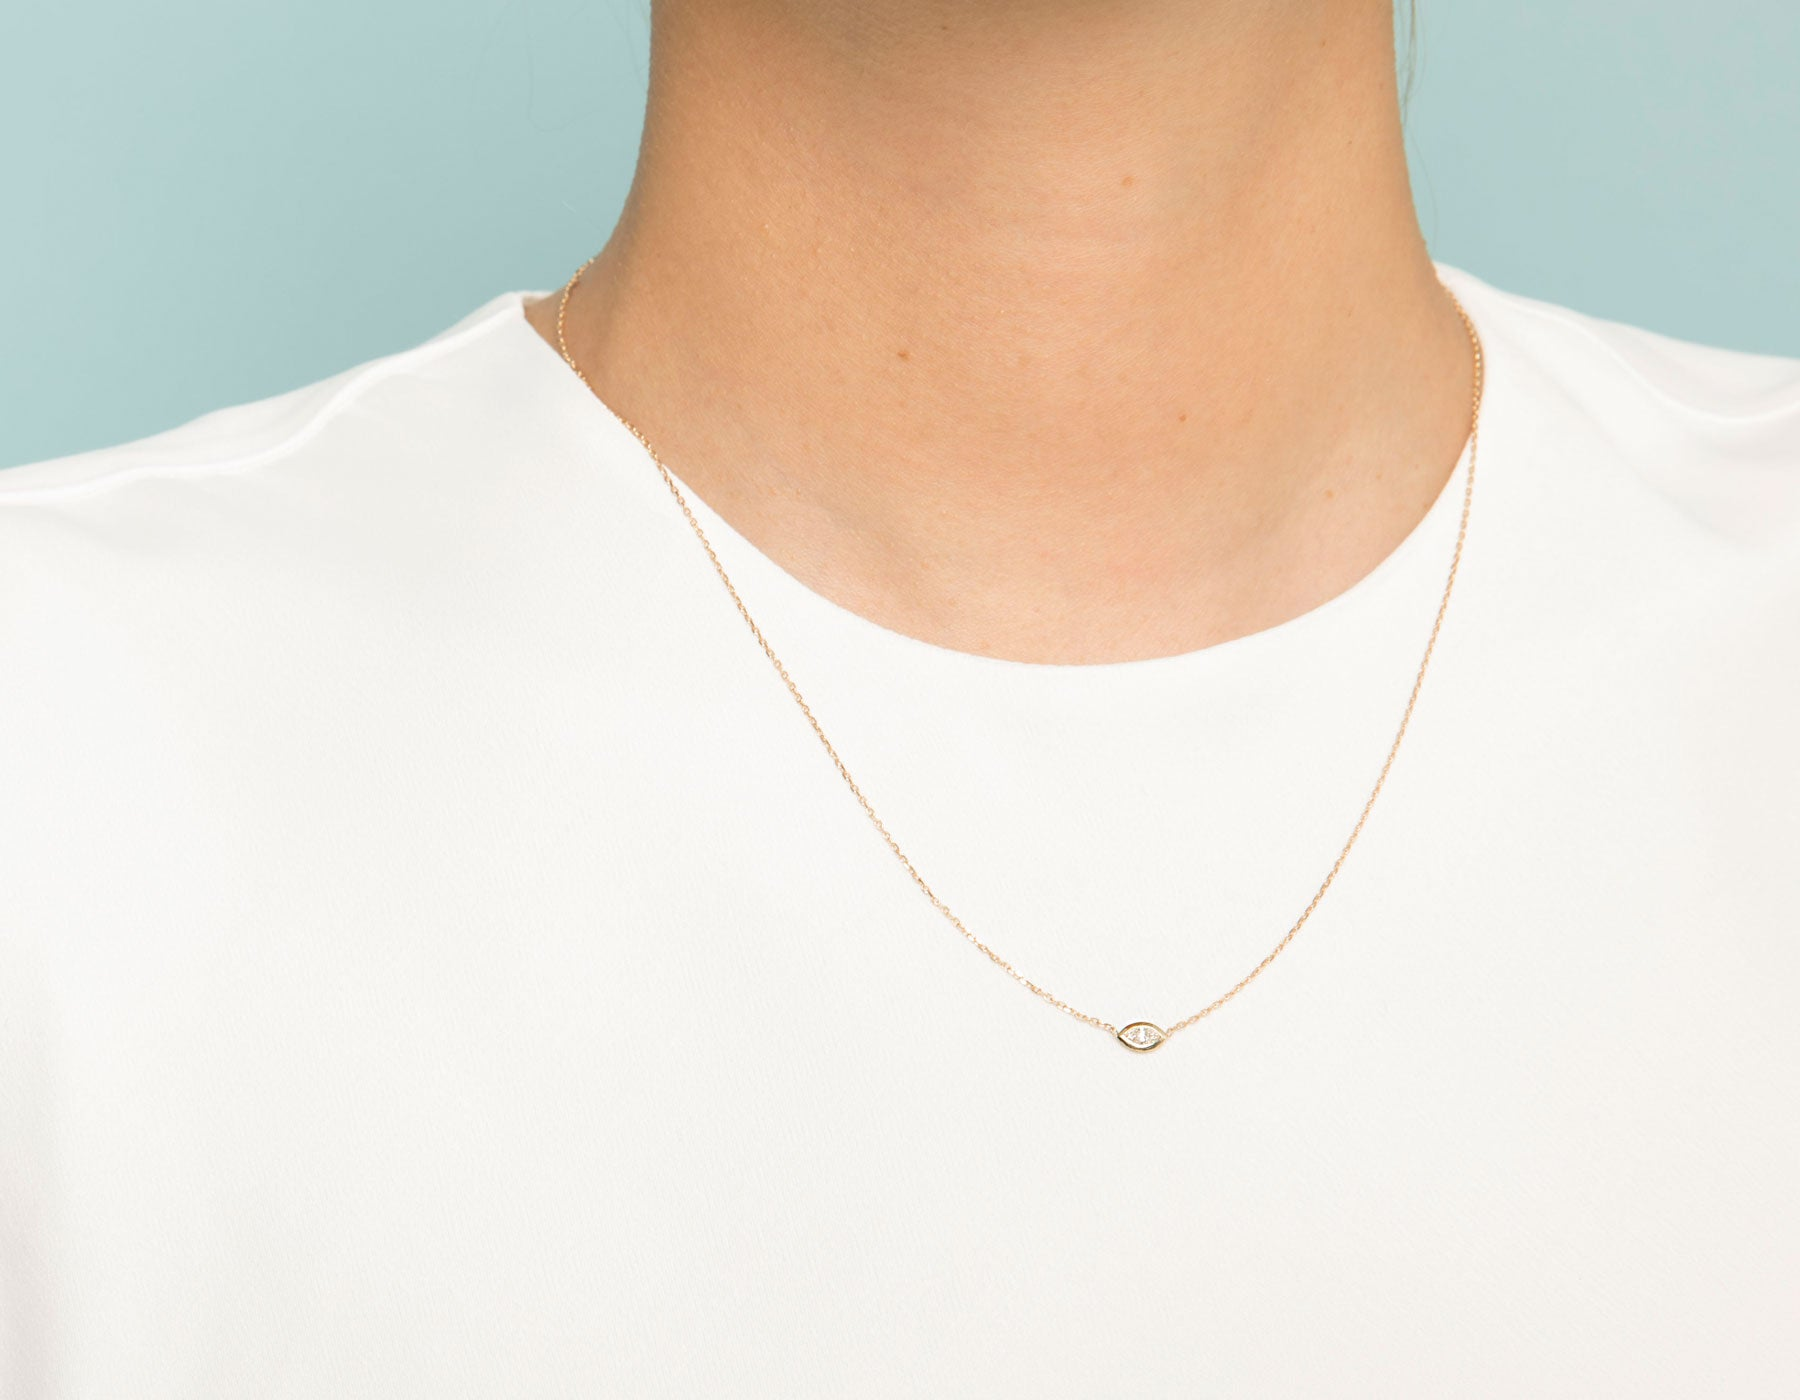 Model wearing dainty minimalist Marquise Diamond Bezel Necklace by Vrai, 14K Rose Gold